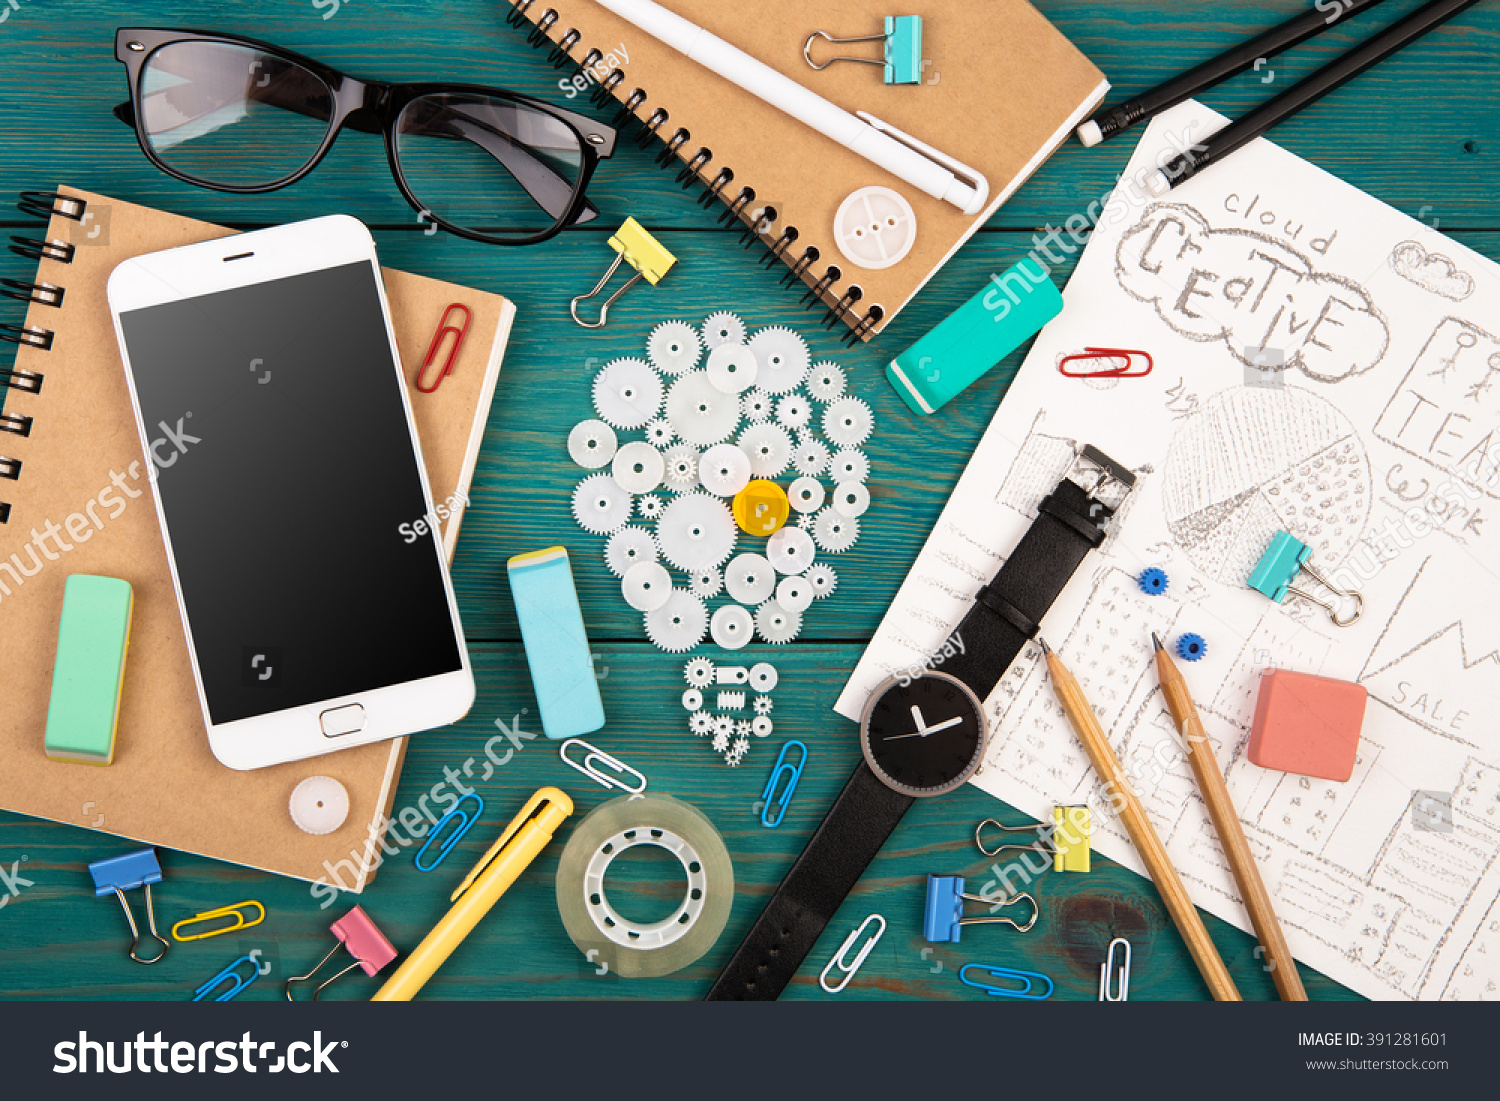 idea office supplies. Idea Concept - Phone, Watch, Notepads, Pencils And Colorful Office Supplies